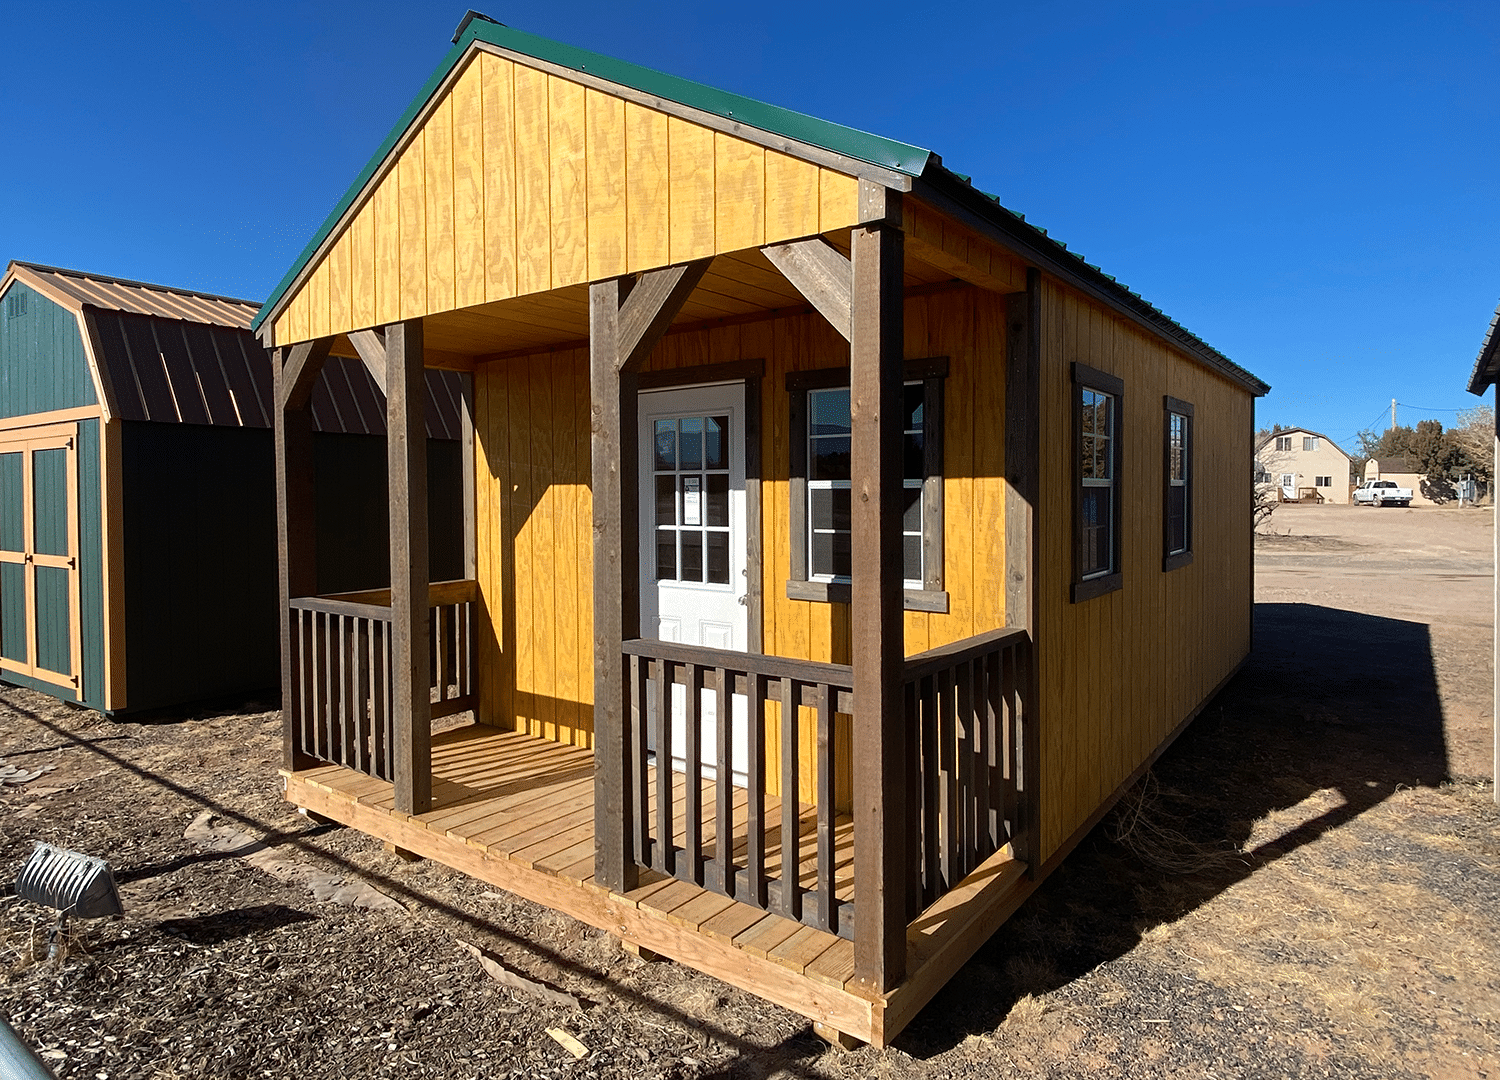 Yoder's Storage Sheds | Utility with Porch | Portable Buildings | Colorado